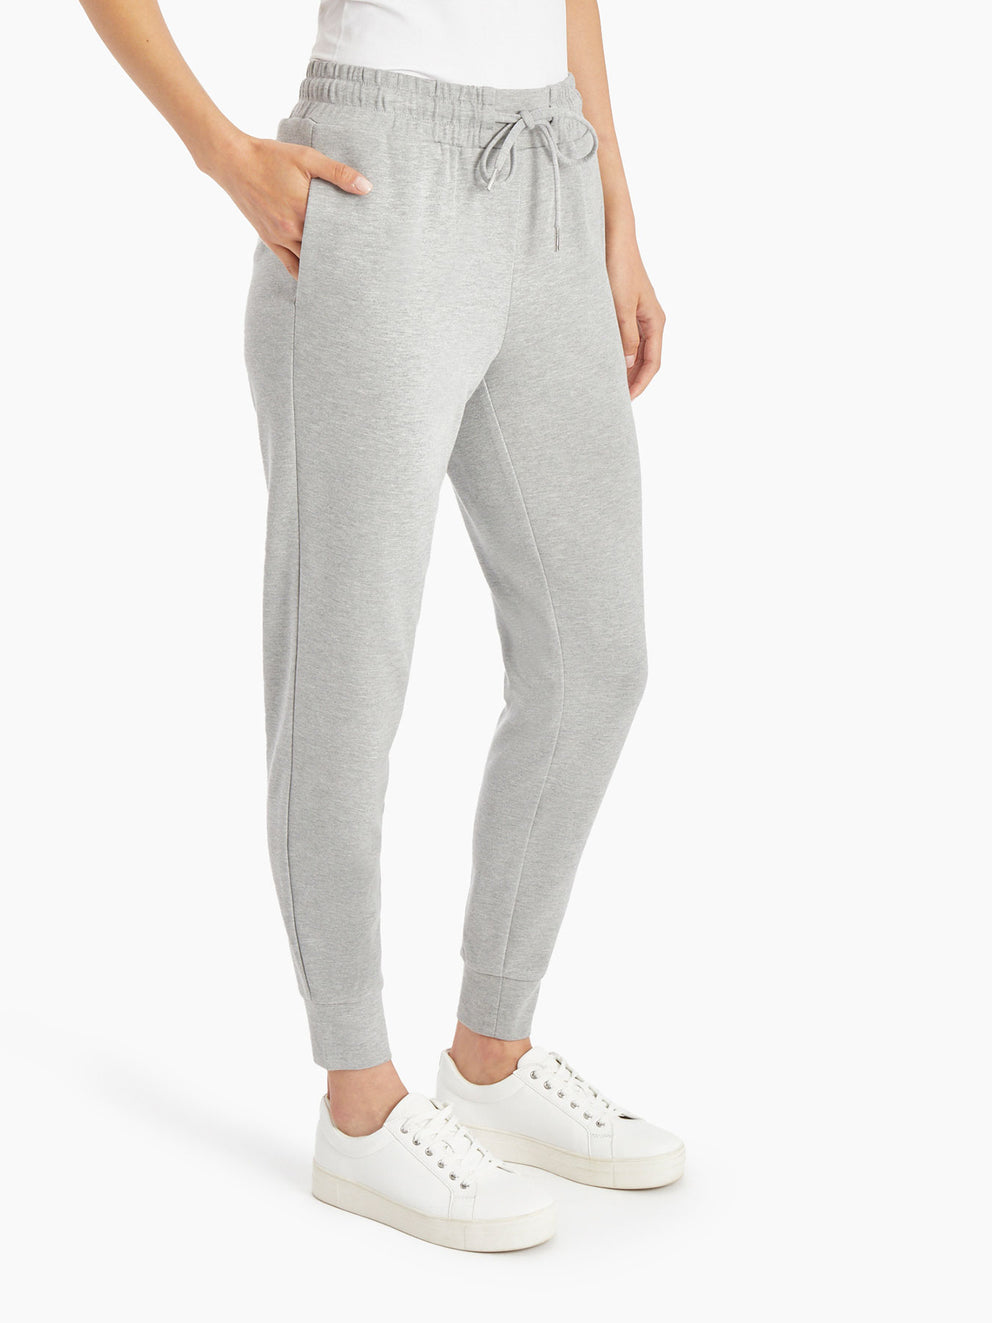 Pull-On Drawstring Jogger Pants – Grey Heather – Jones New York